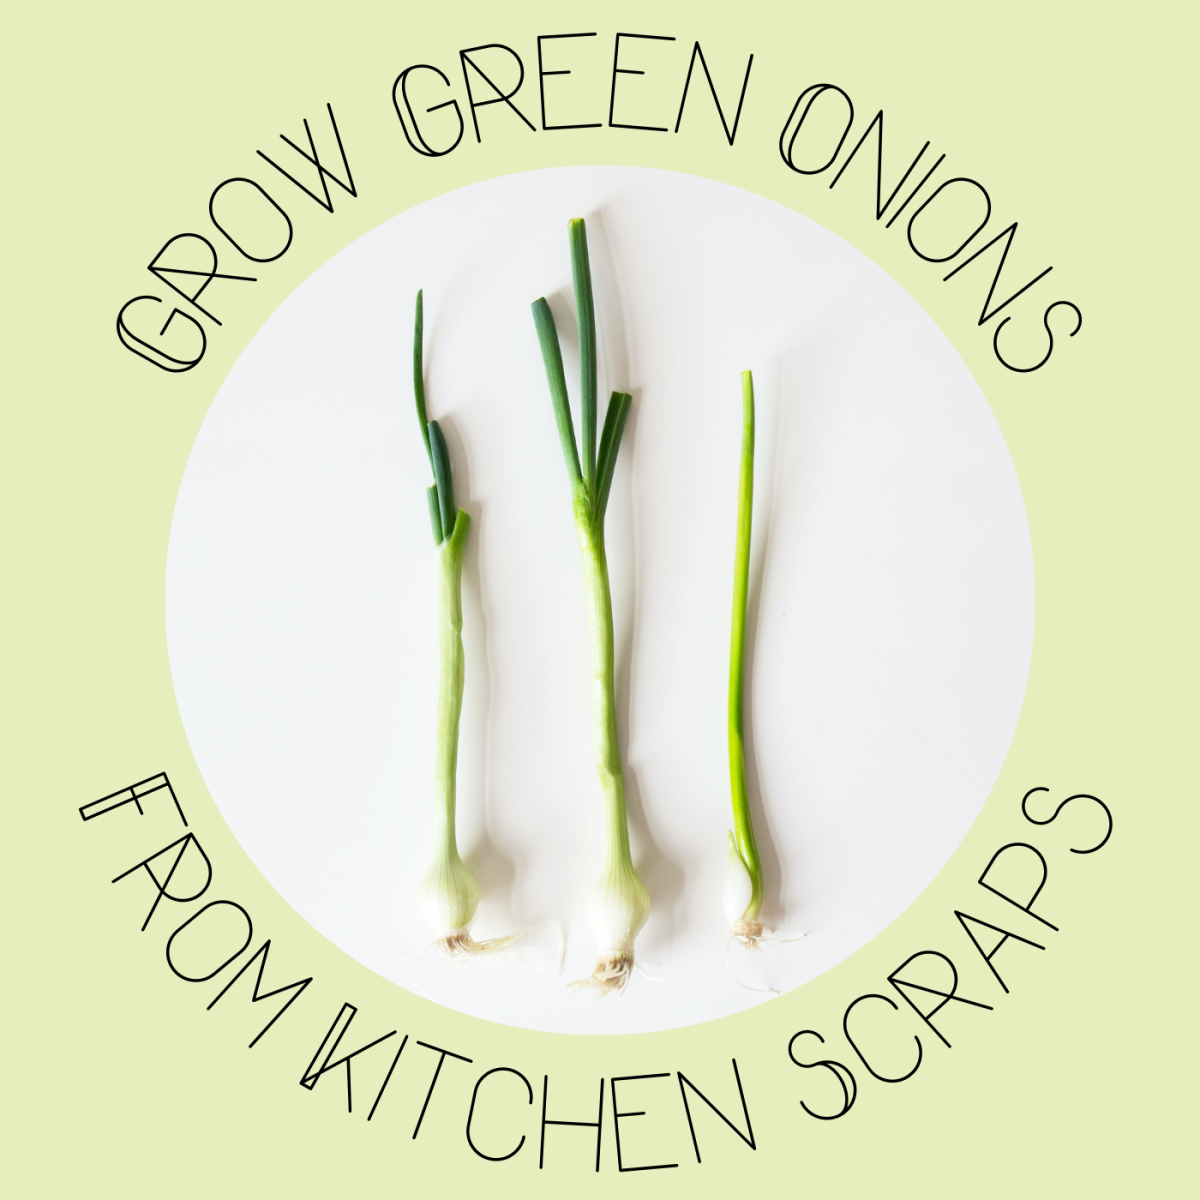 Ready-to-eat green onions are easy to grow.